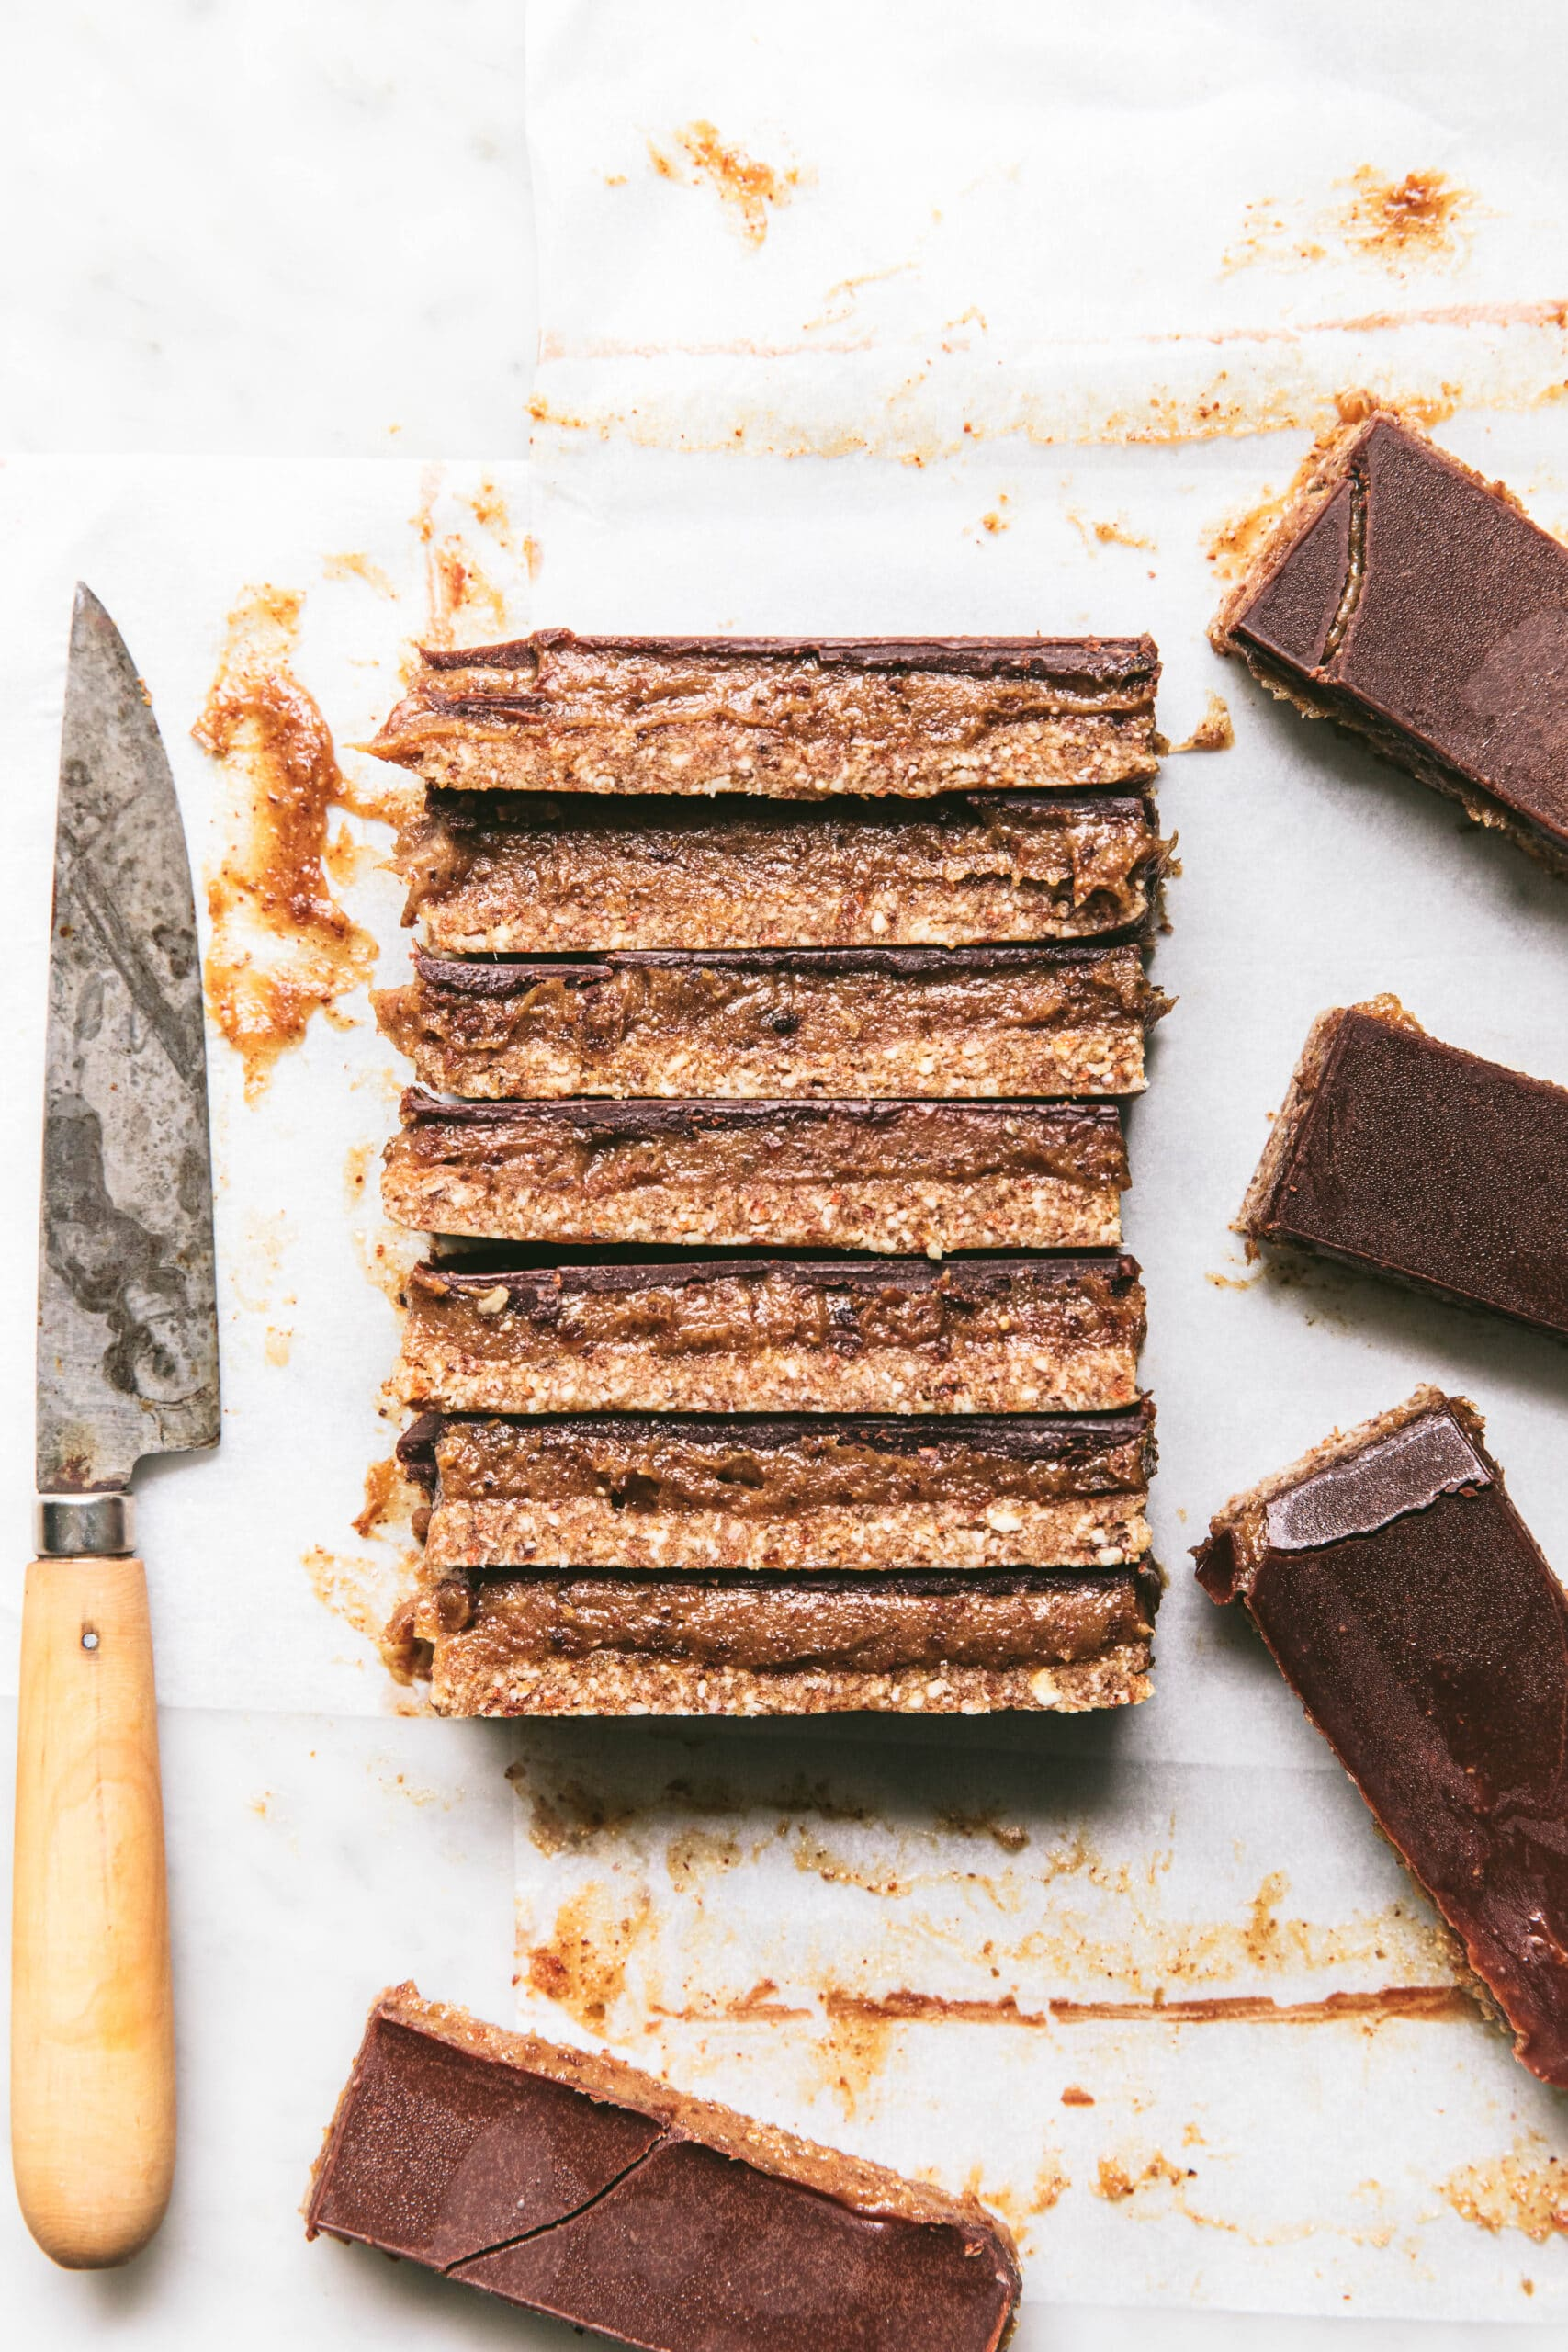 slices of raw salted caramel choc slice